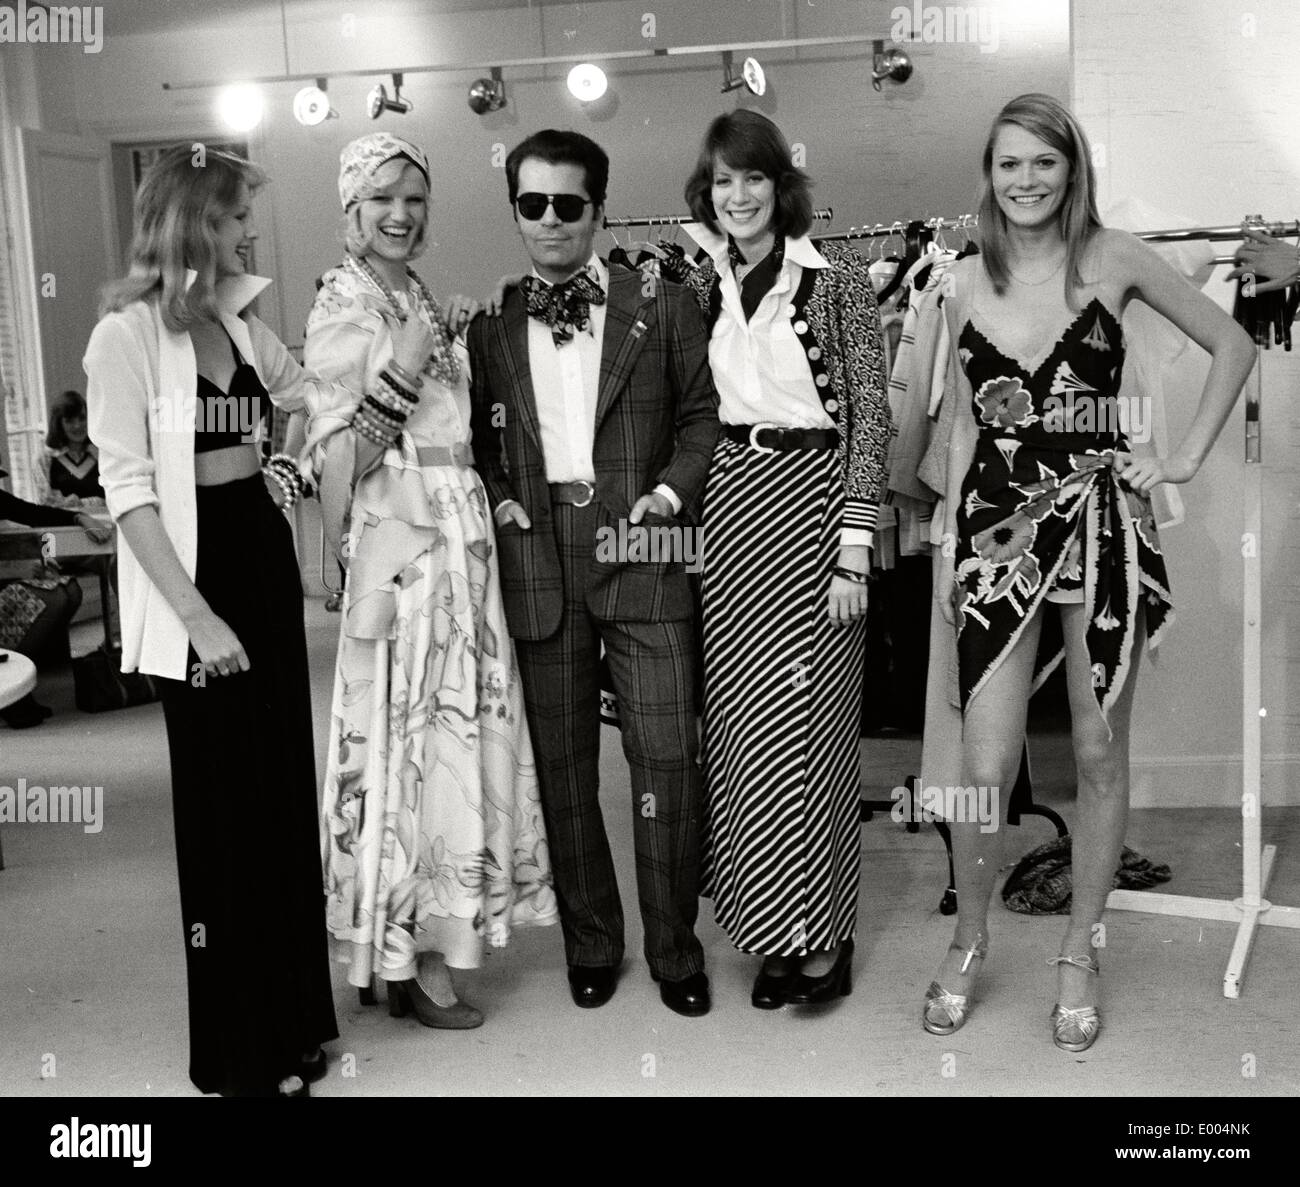 Karl lagerfeld with models at maison chloe 1972 stock for Model decoration maison